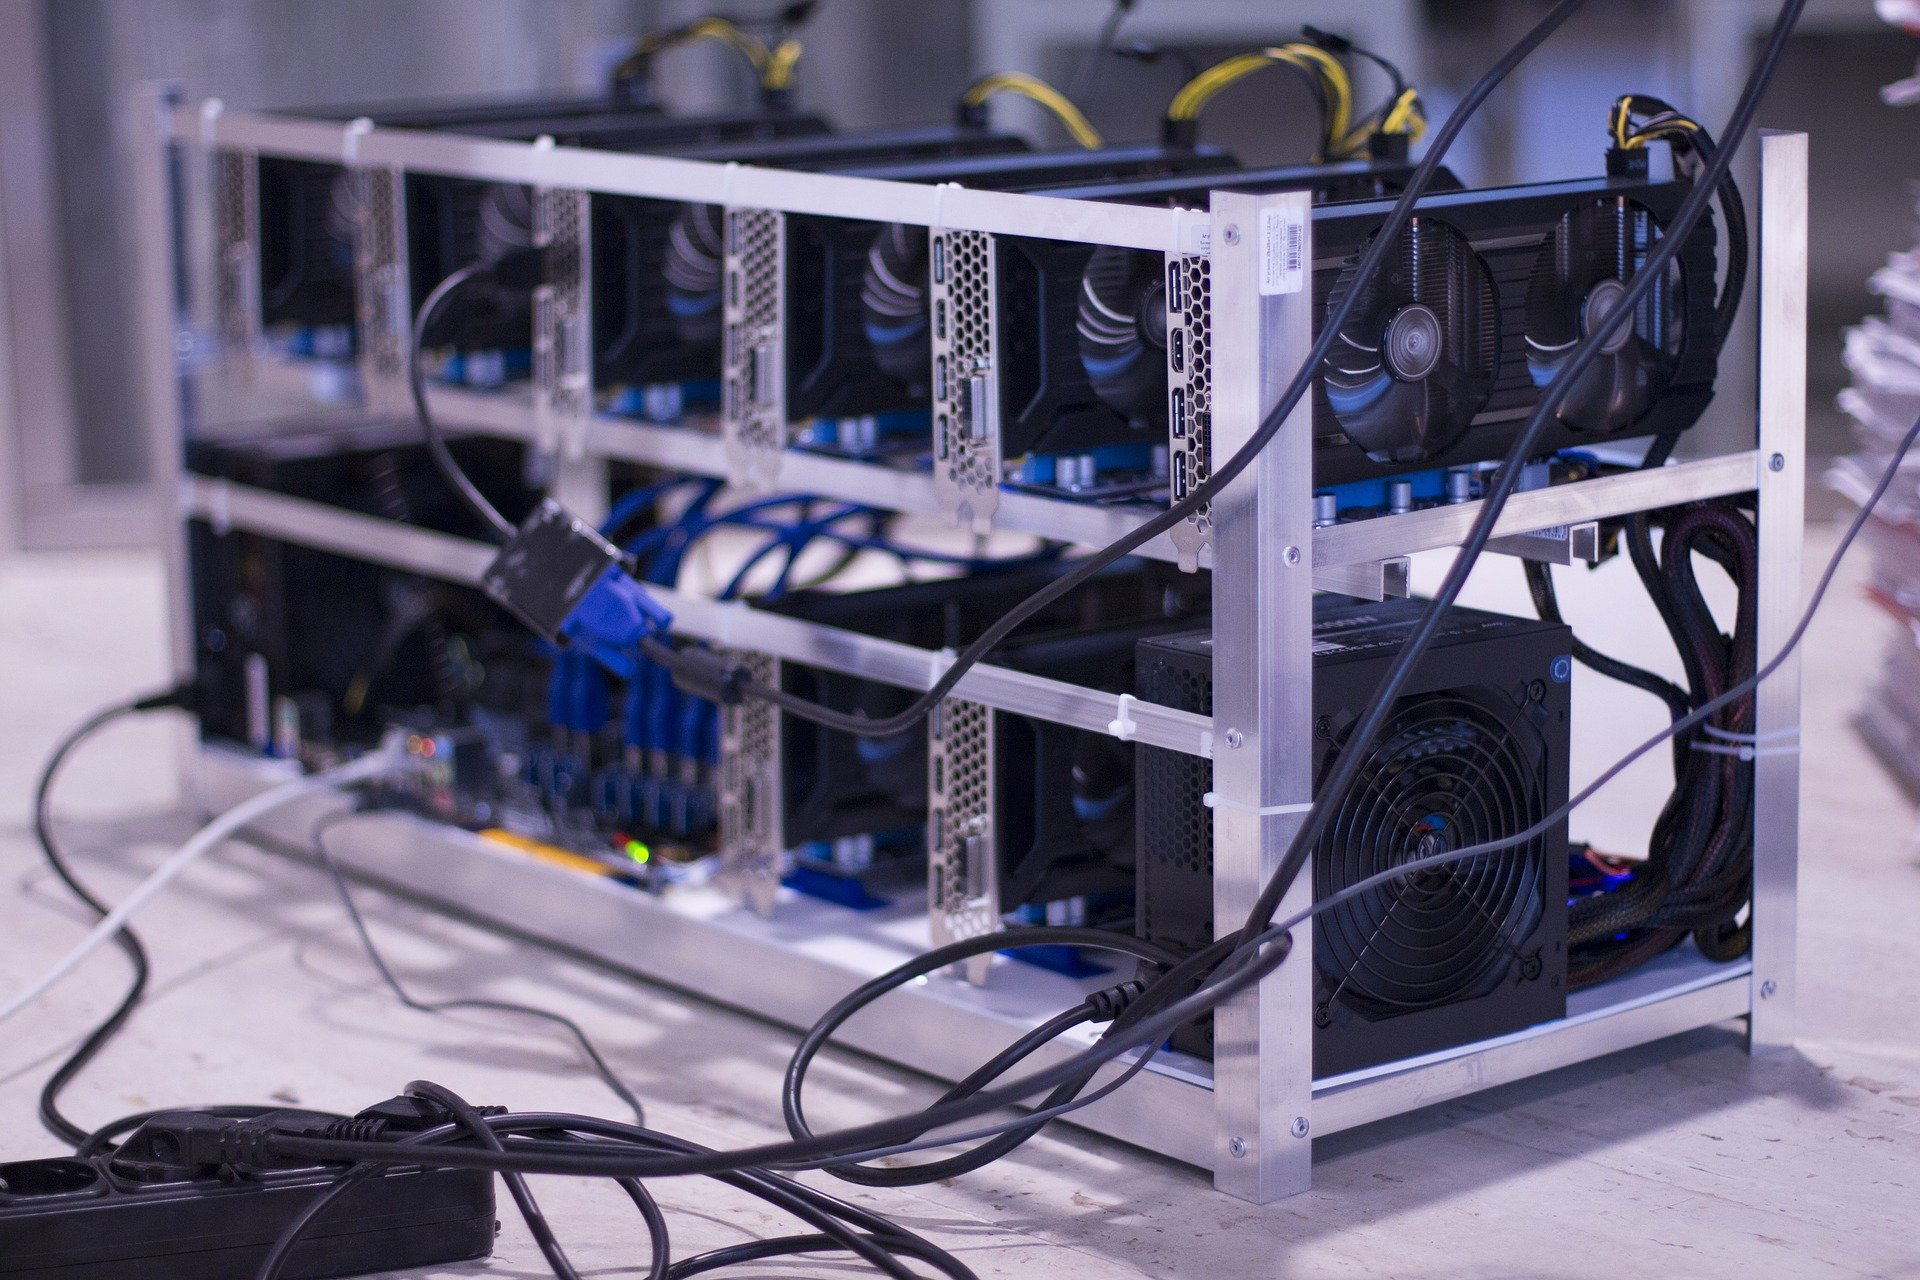 This Canadian Mining Group Mined 800 Bitcoins in 3 Months 13